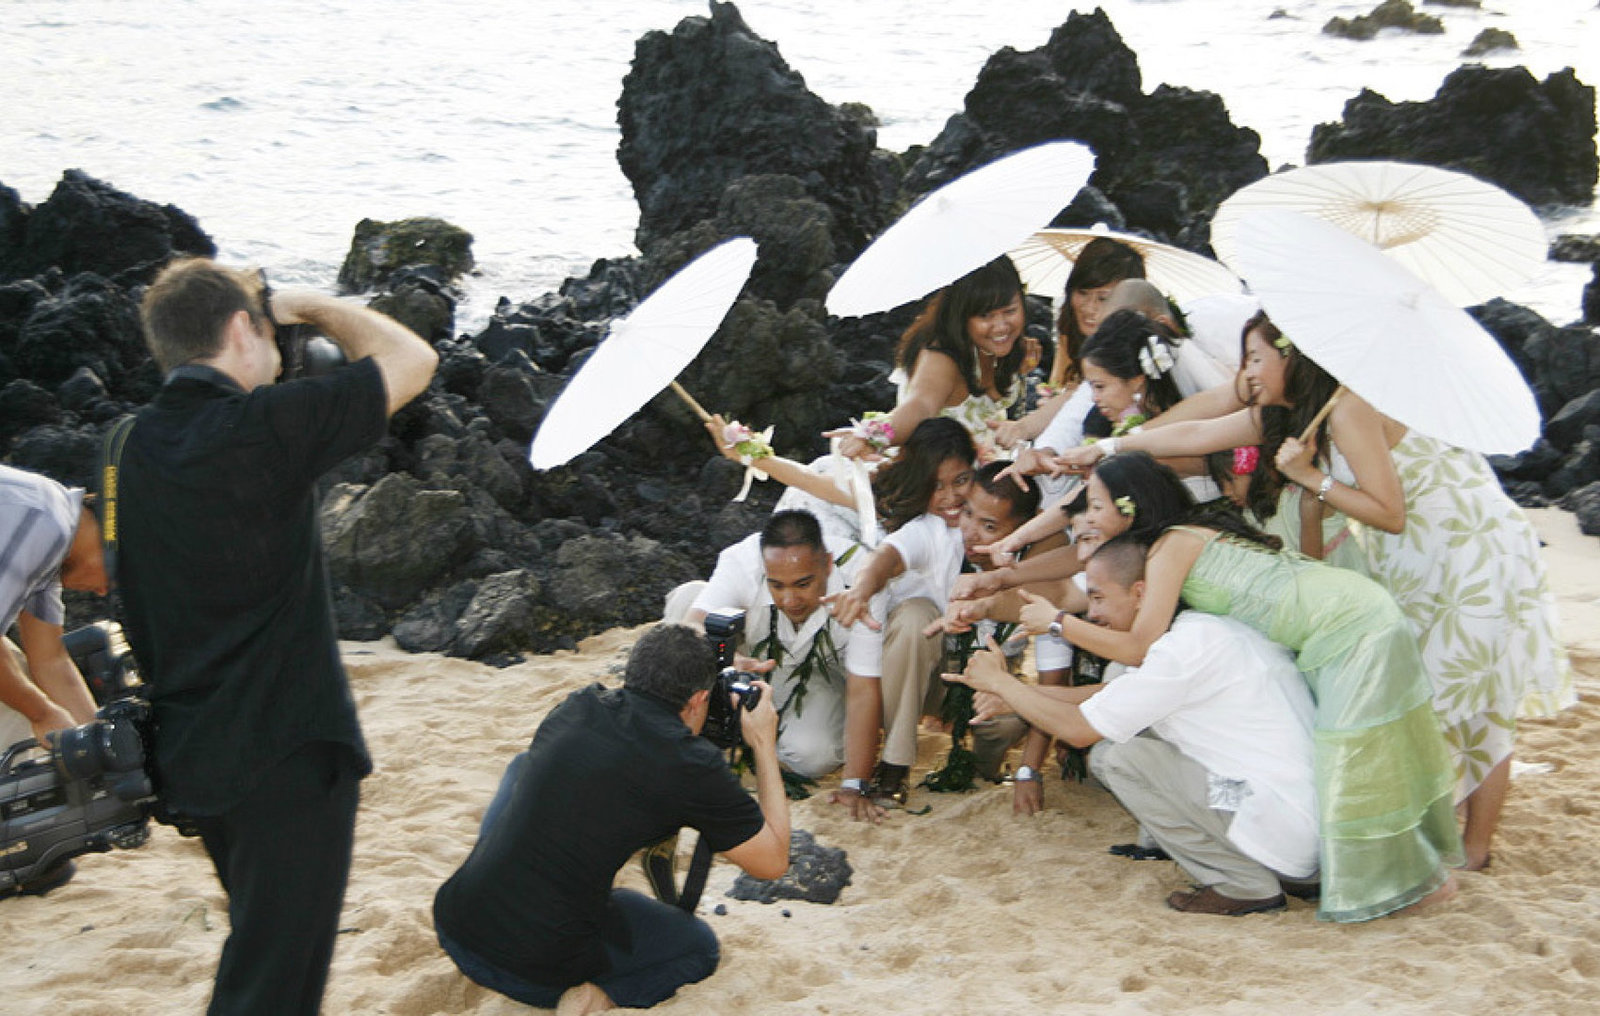 Maui weddings | Oahu weddings | Kauai weddings | Big Island weddings | Honolulu weddings | Waikiki weddings